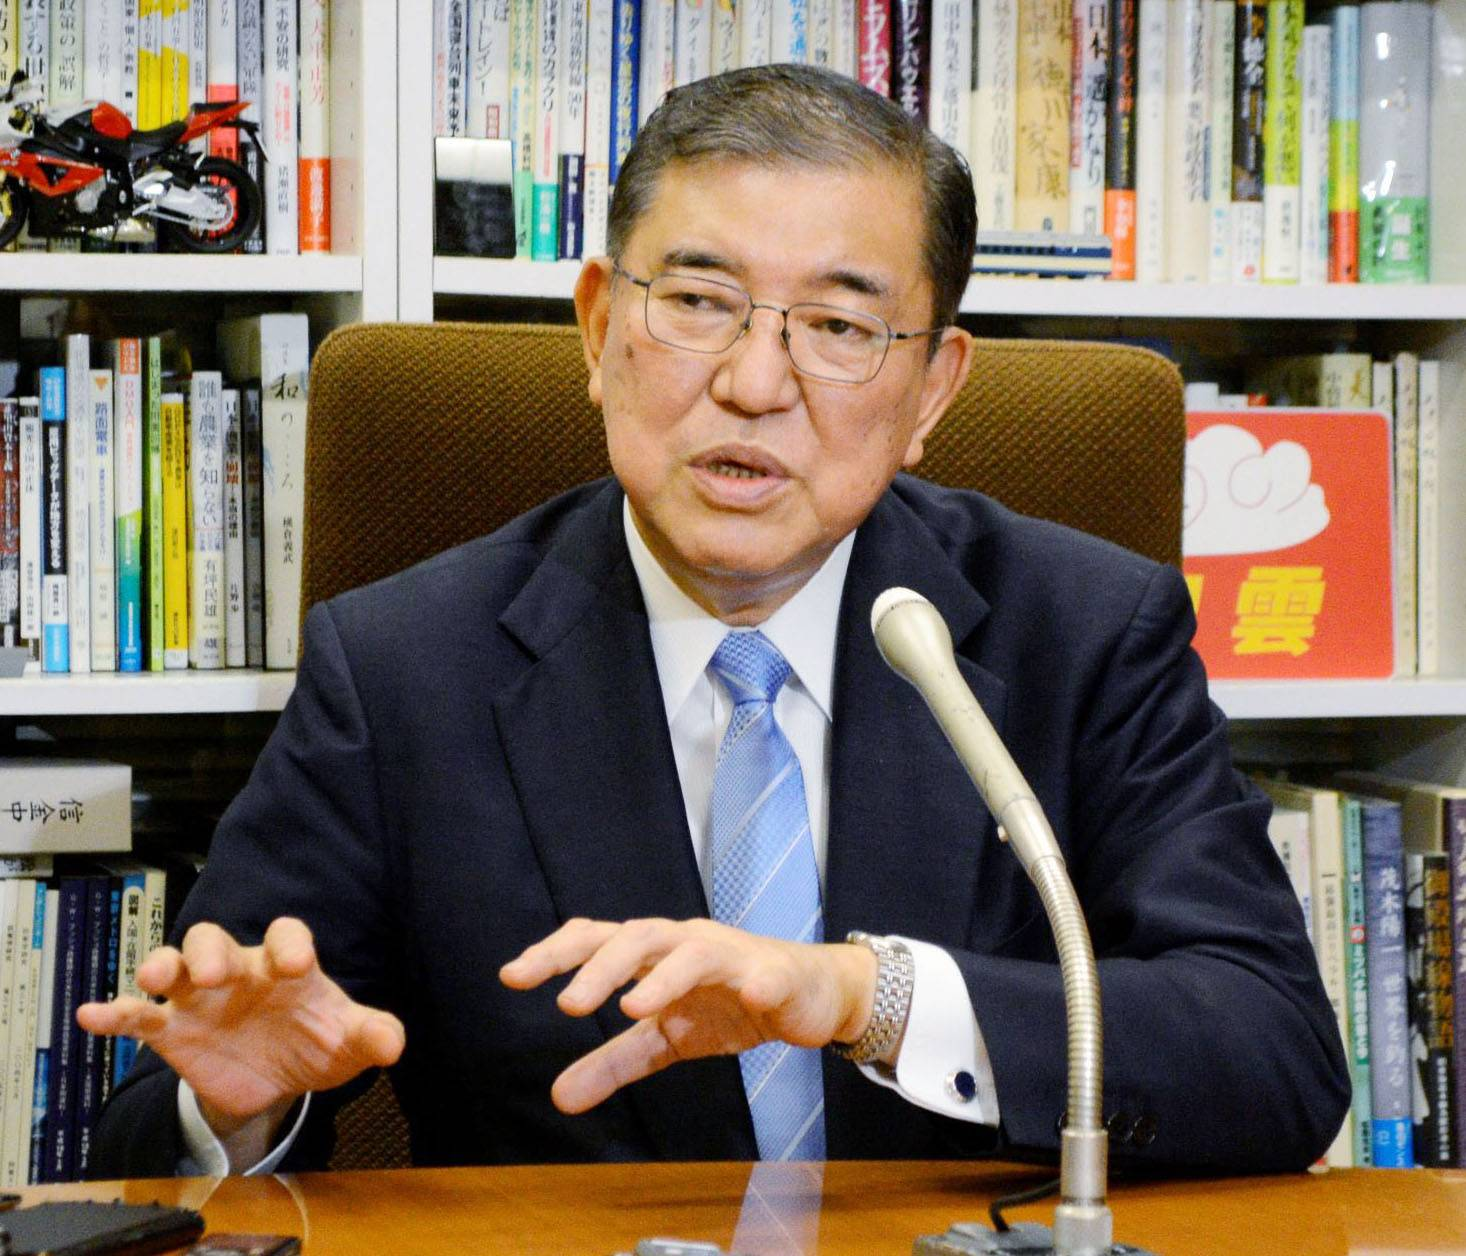 Liberal Democratic Party lawmaker Shigeru Ishiba speaks to reporters after holding talks with Taro Kono, the minister in charge of Japan's vaccine rollout, on Monday in Tokyo. | POOL / VIA KYODO